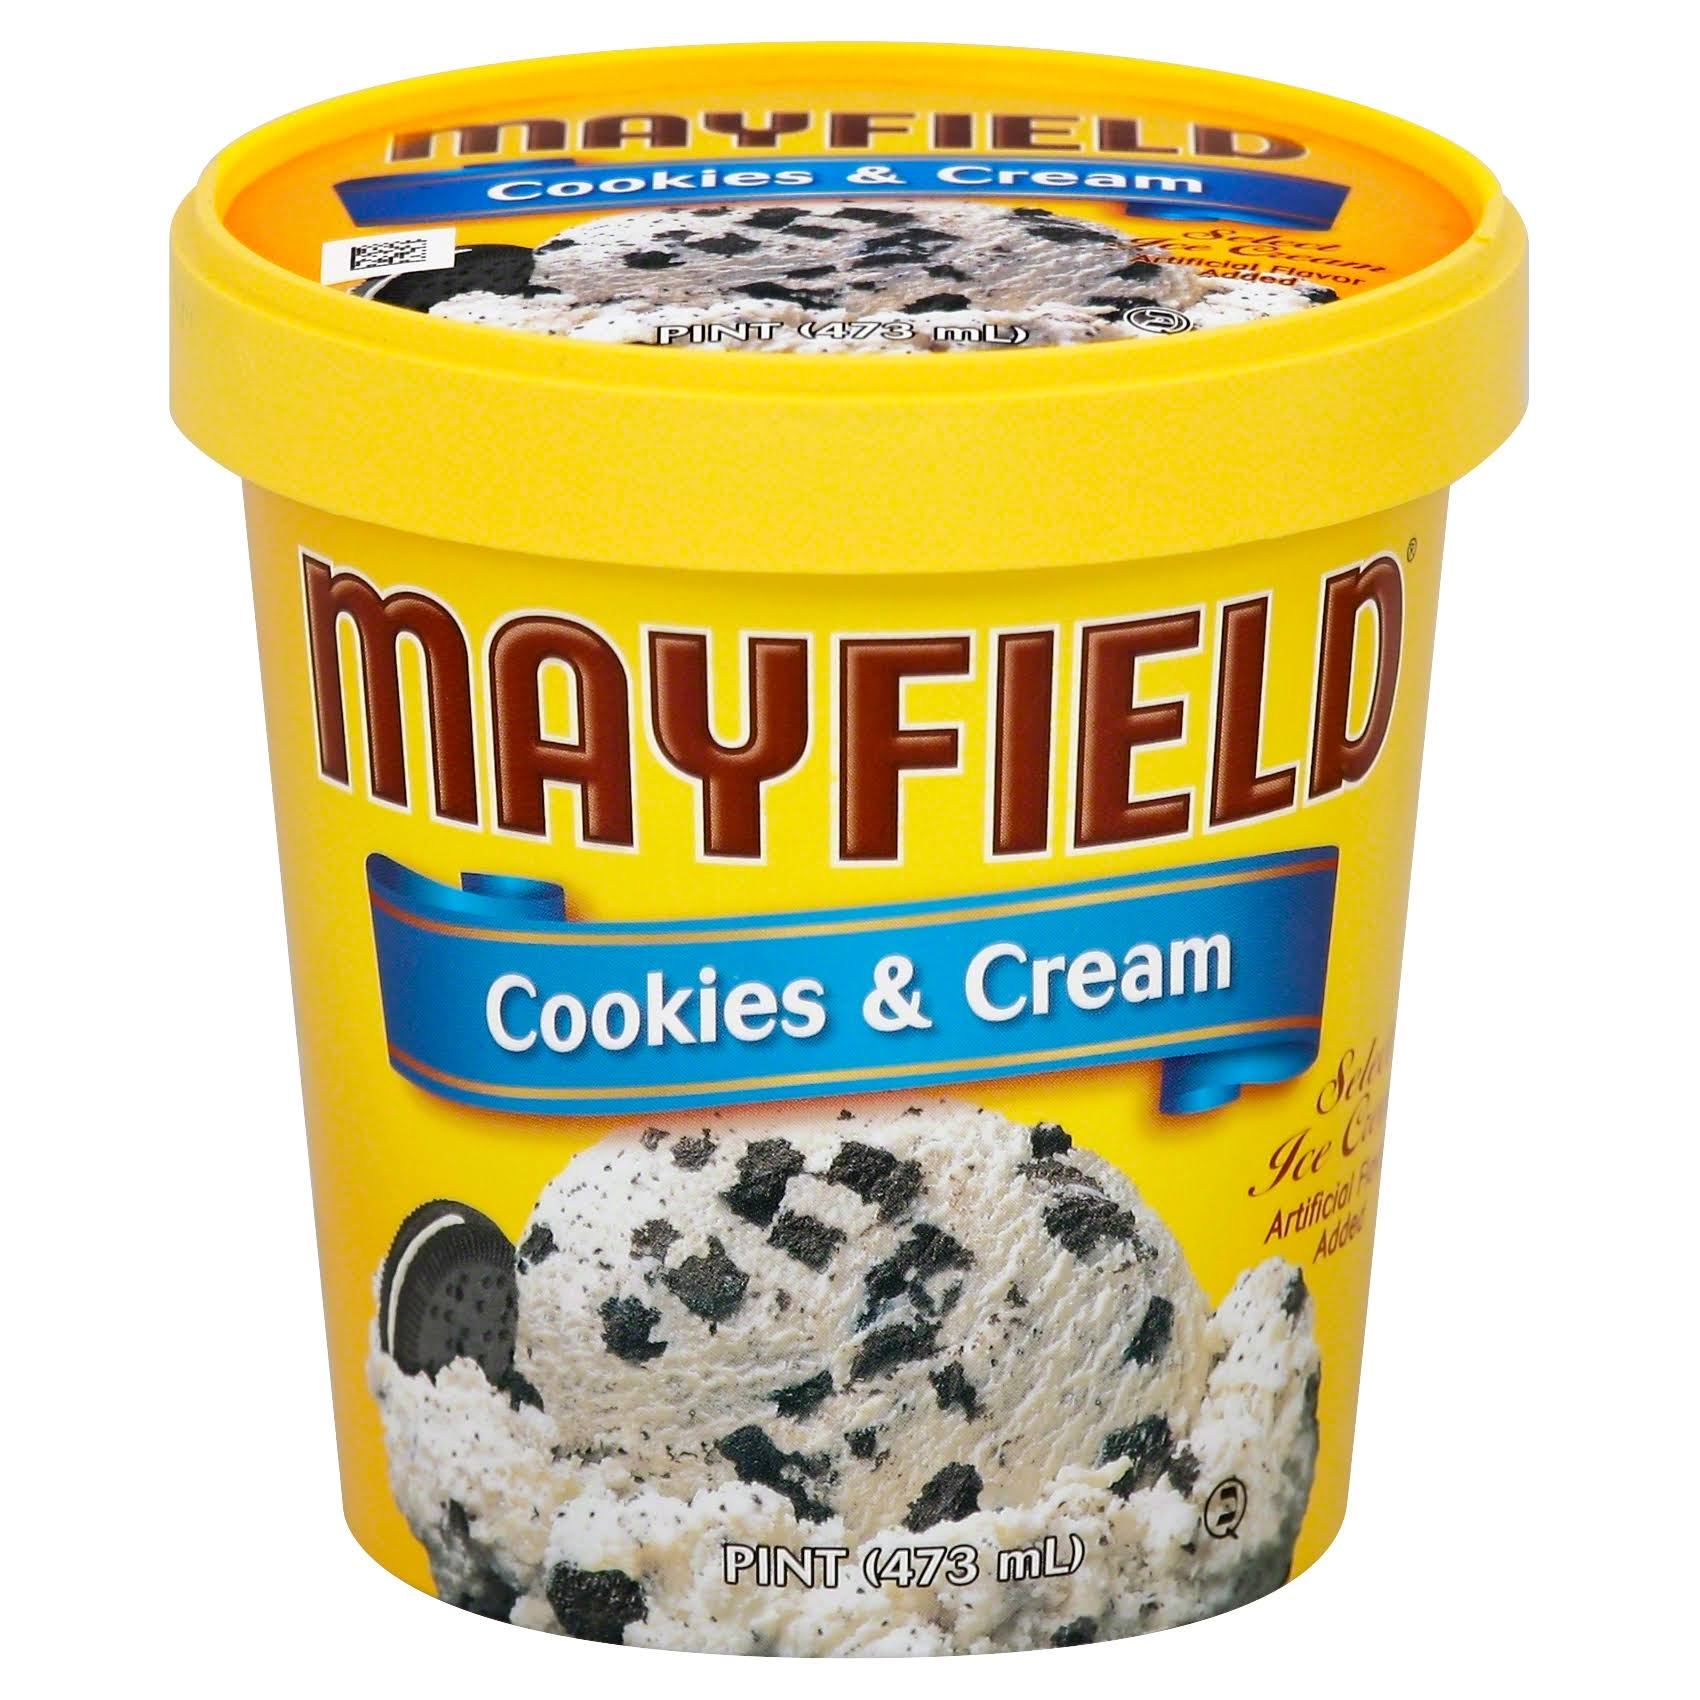 Mayfield Cookies & Cream Ice Cream - 1pt